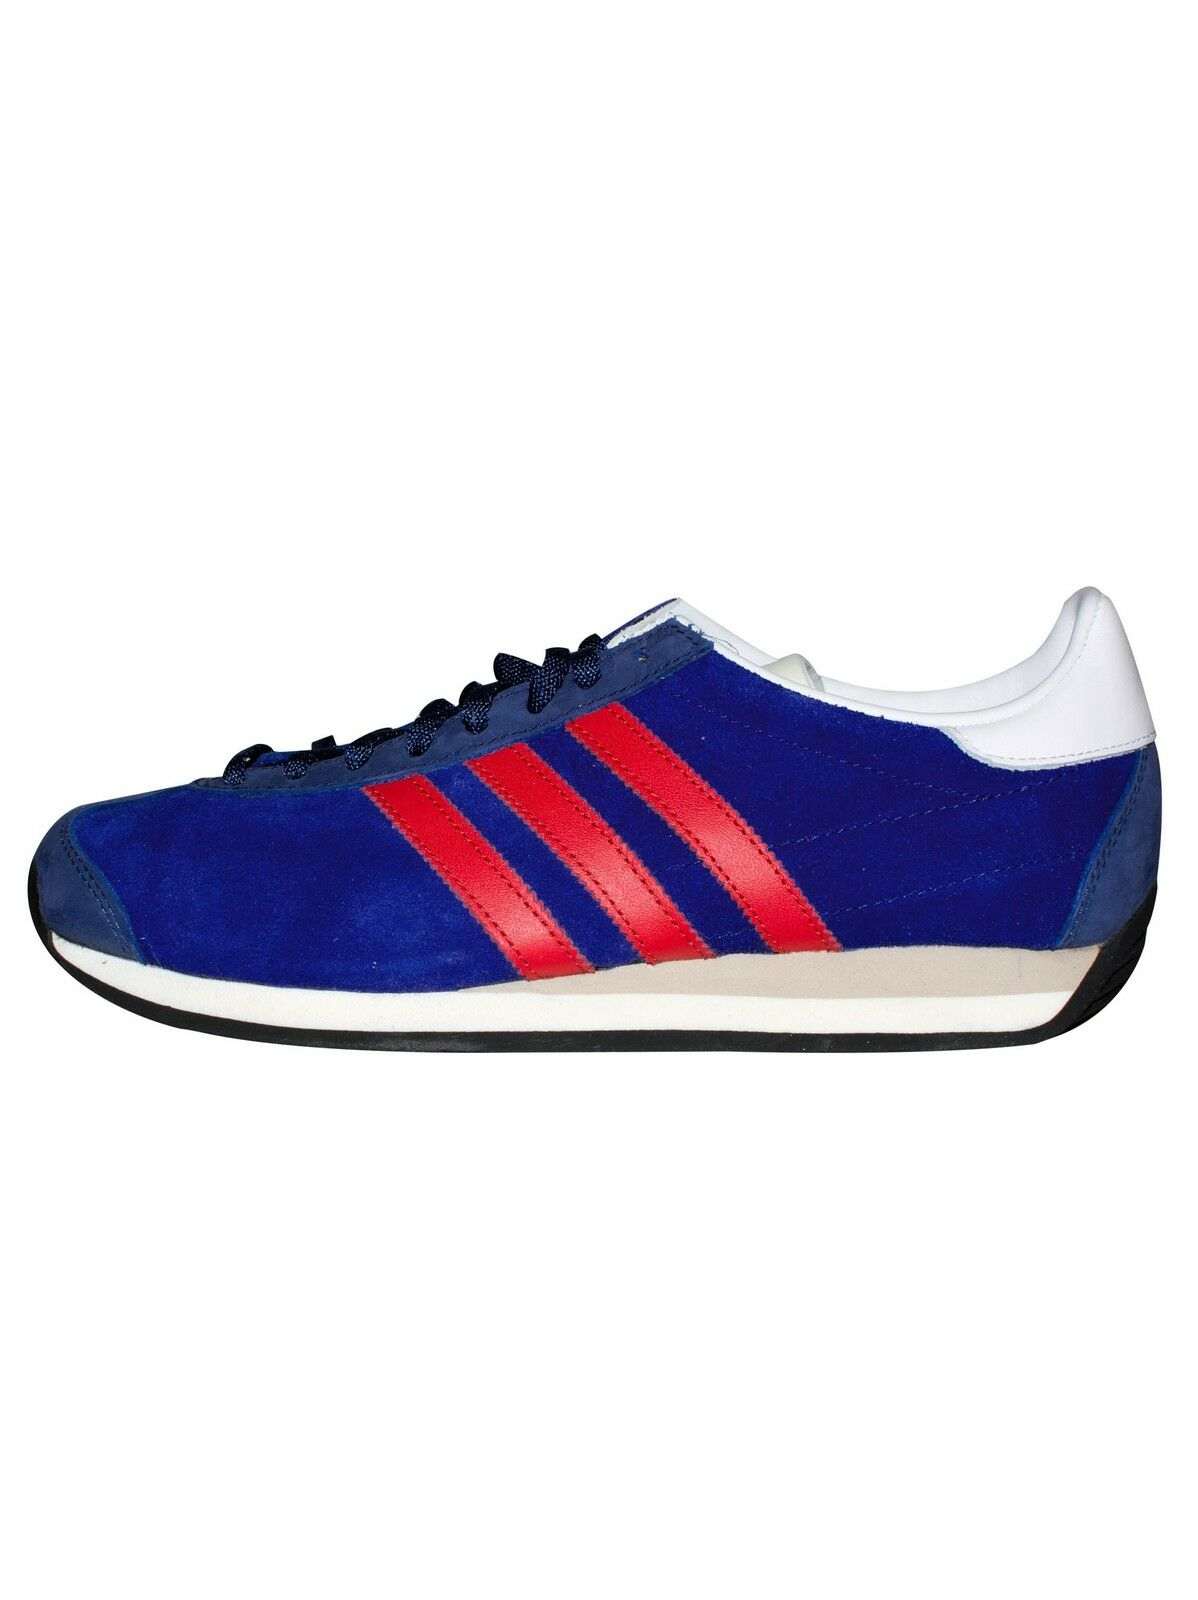 Adidas Originals Country & OG Blau & Country ROT Trainer 9cf24d